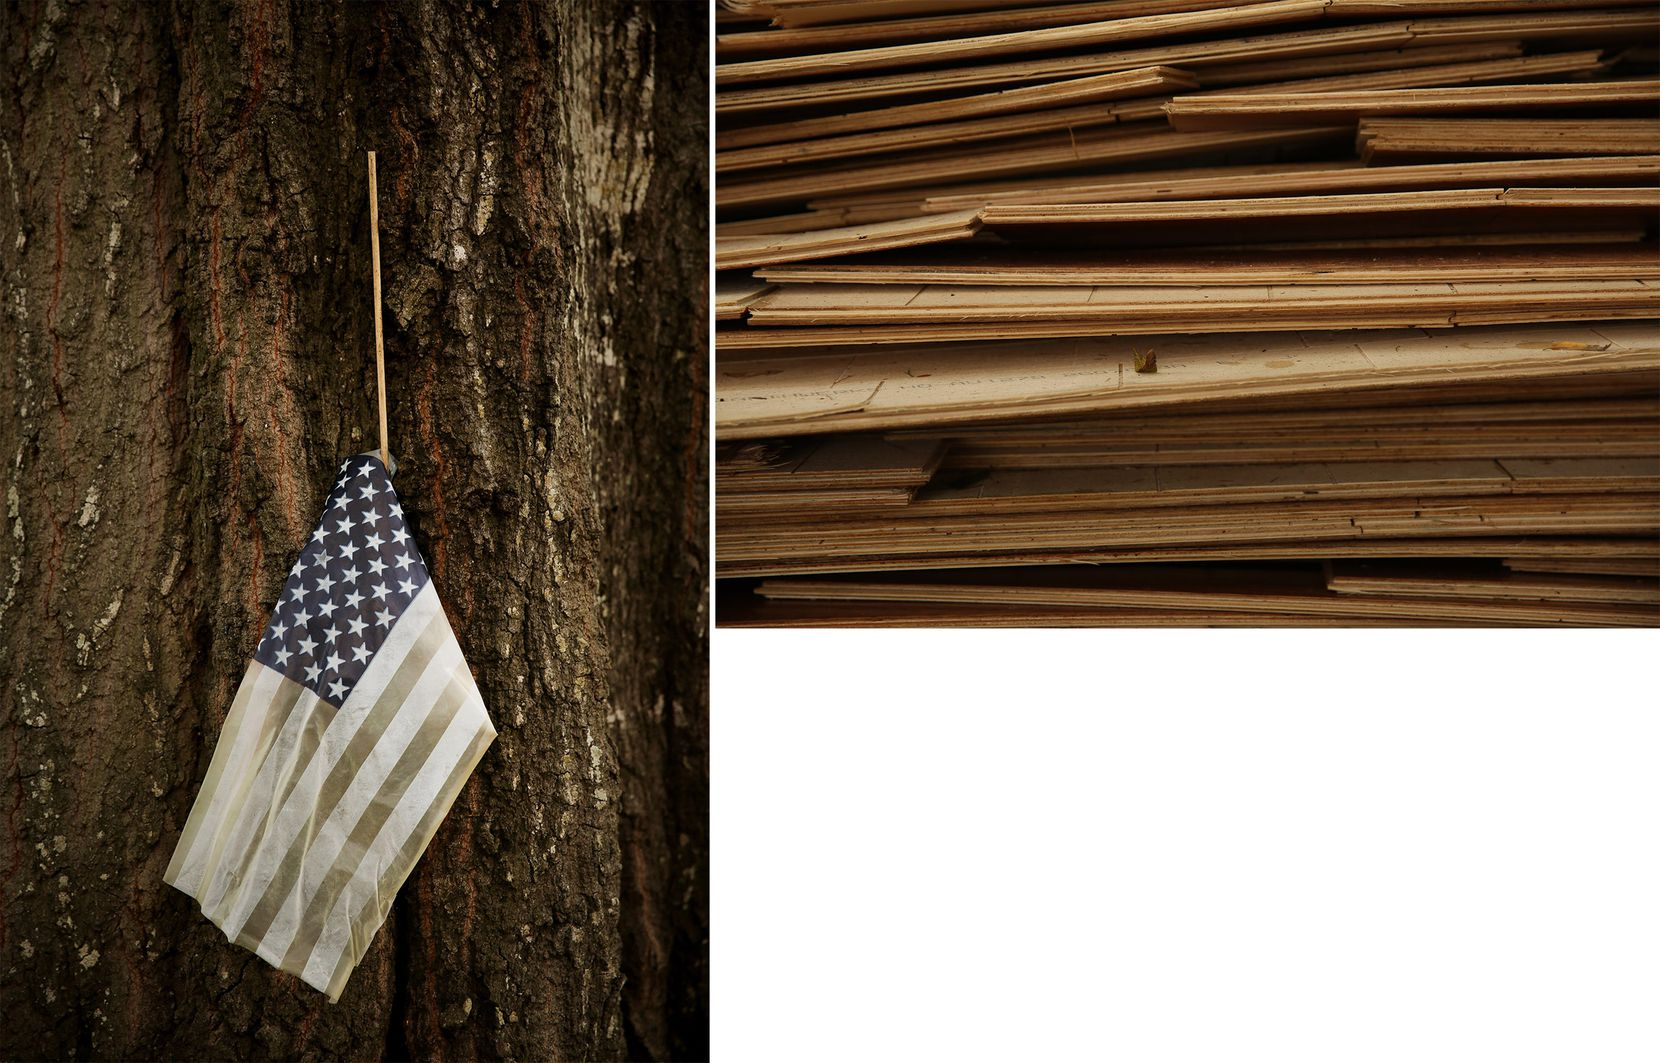 Surrounded by dumped debris, an American flag hangs from a tree's crevice in the Meyerland neighborhood.